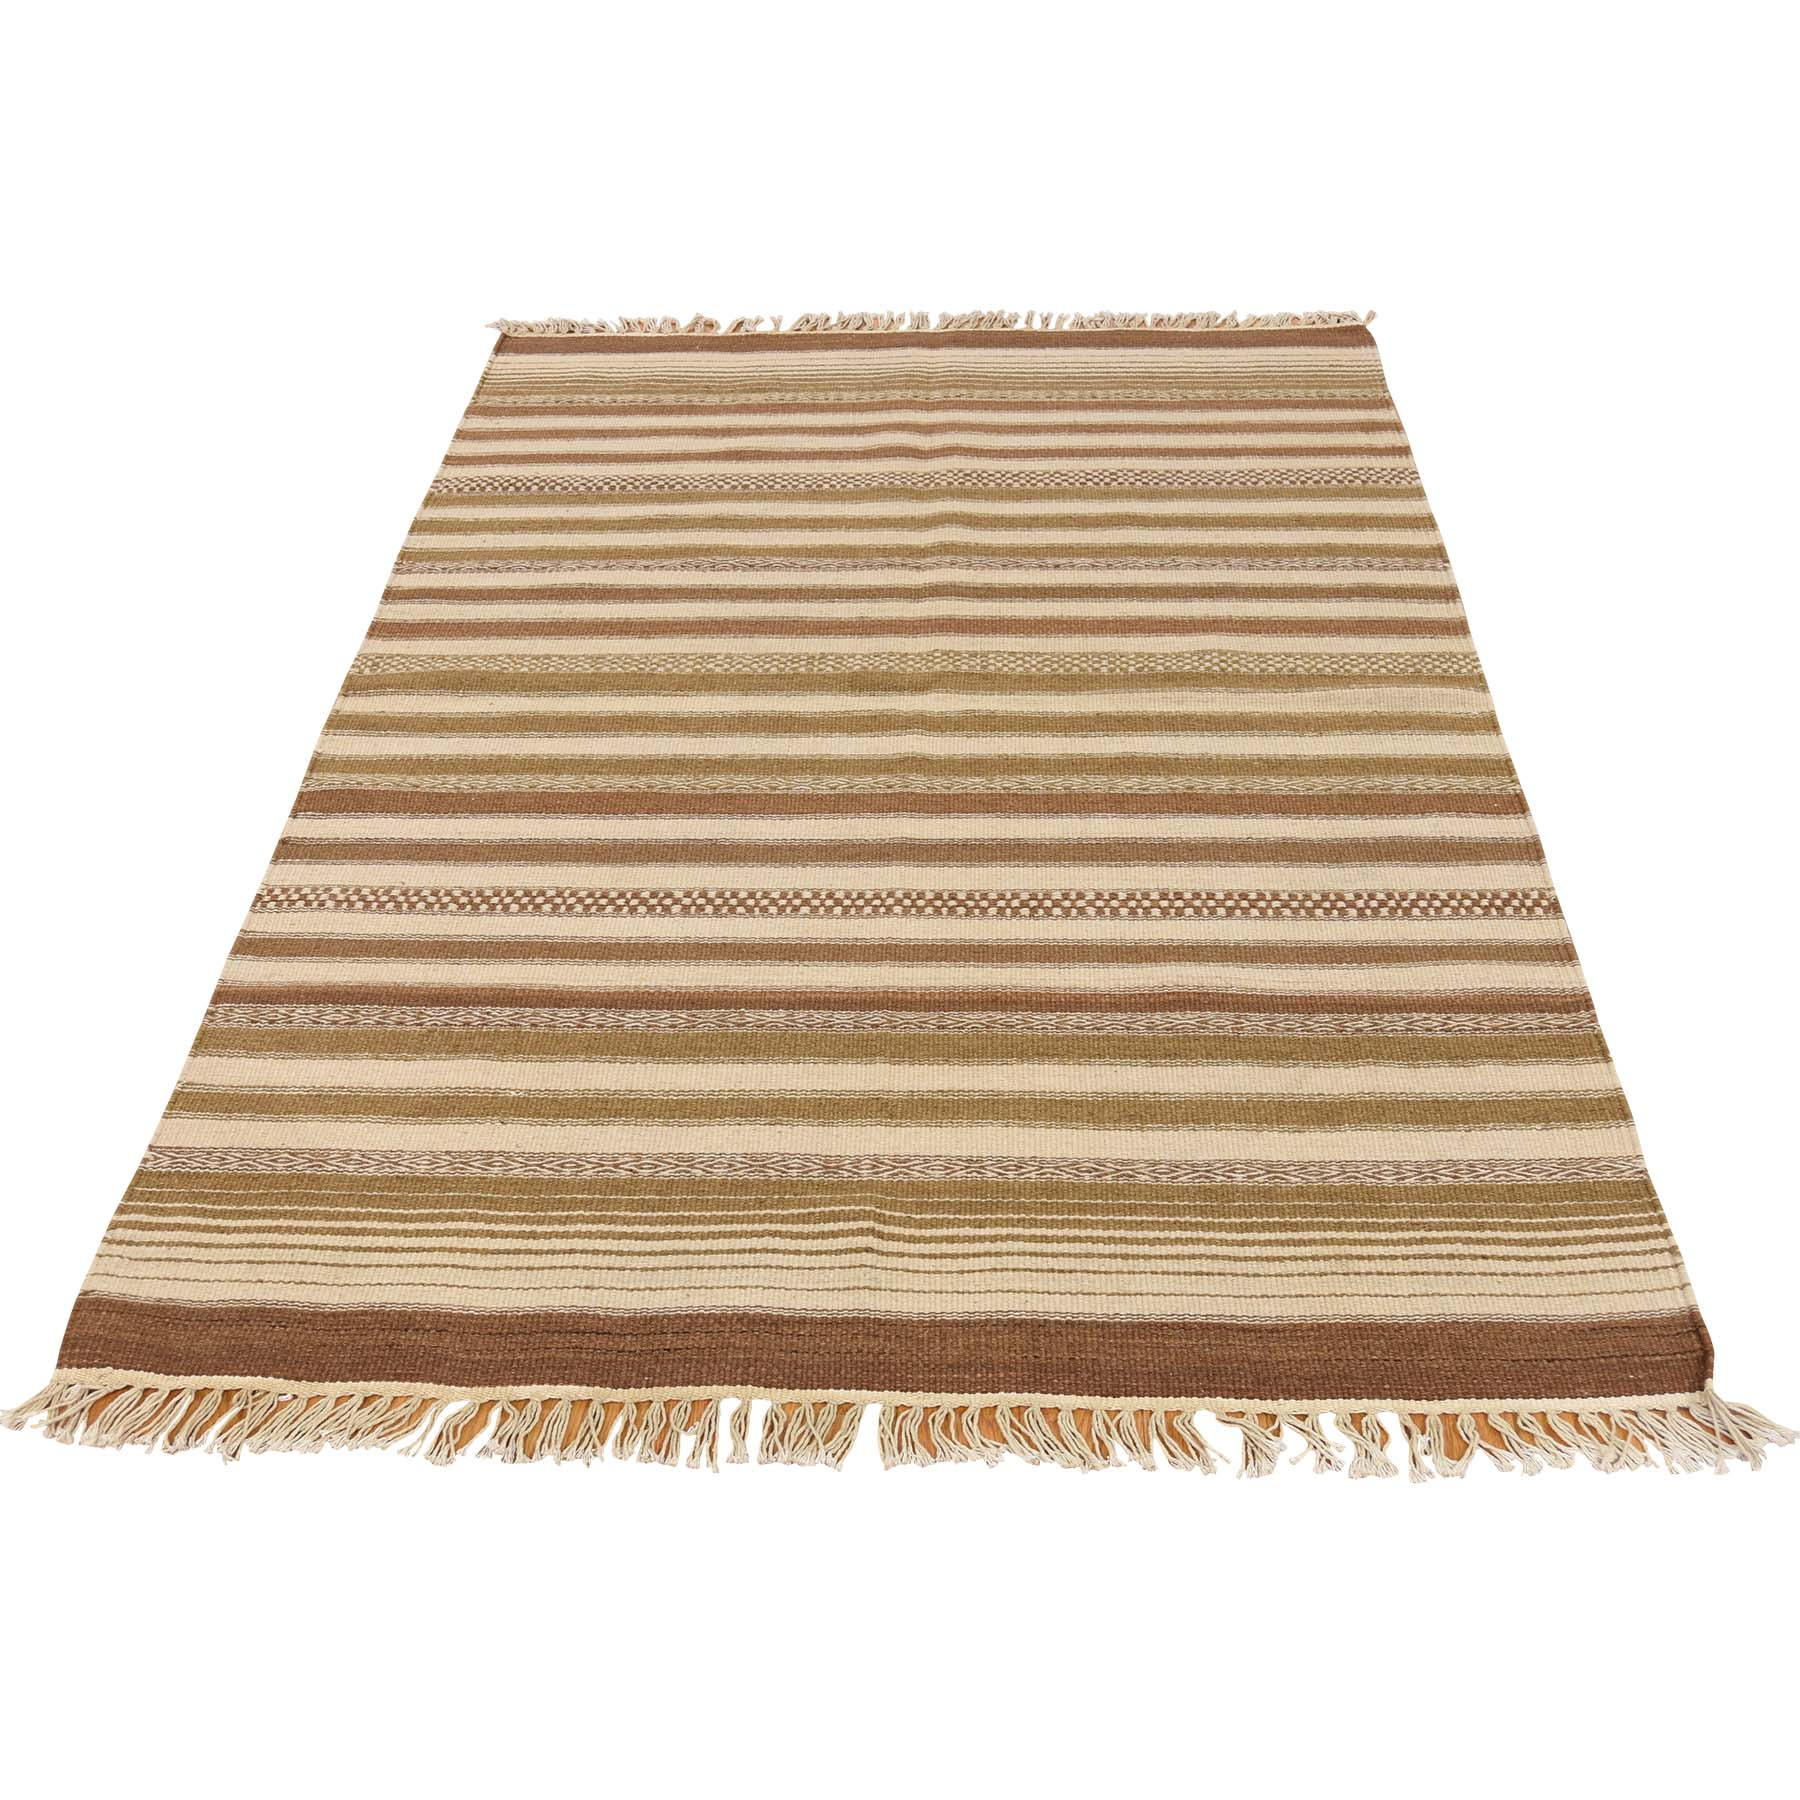 3'9''X5'10'' Striped Durie Kilim Hand Woven Flat Weave Reversible Rug moac79c0